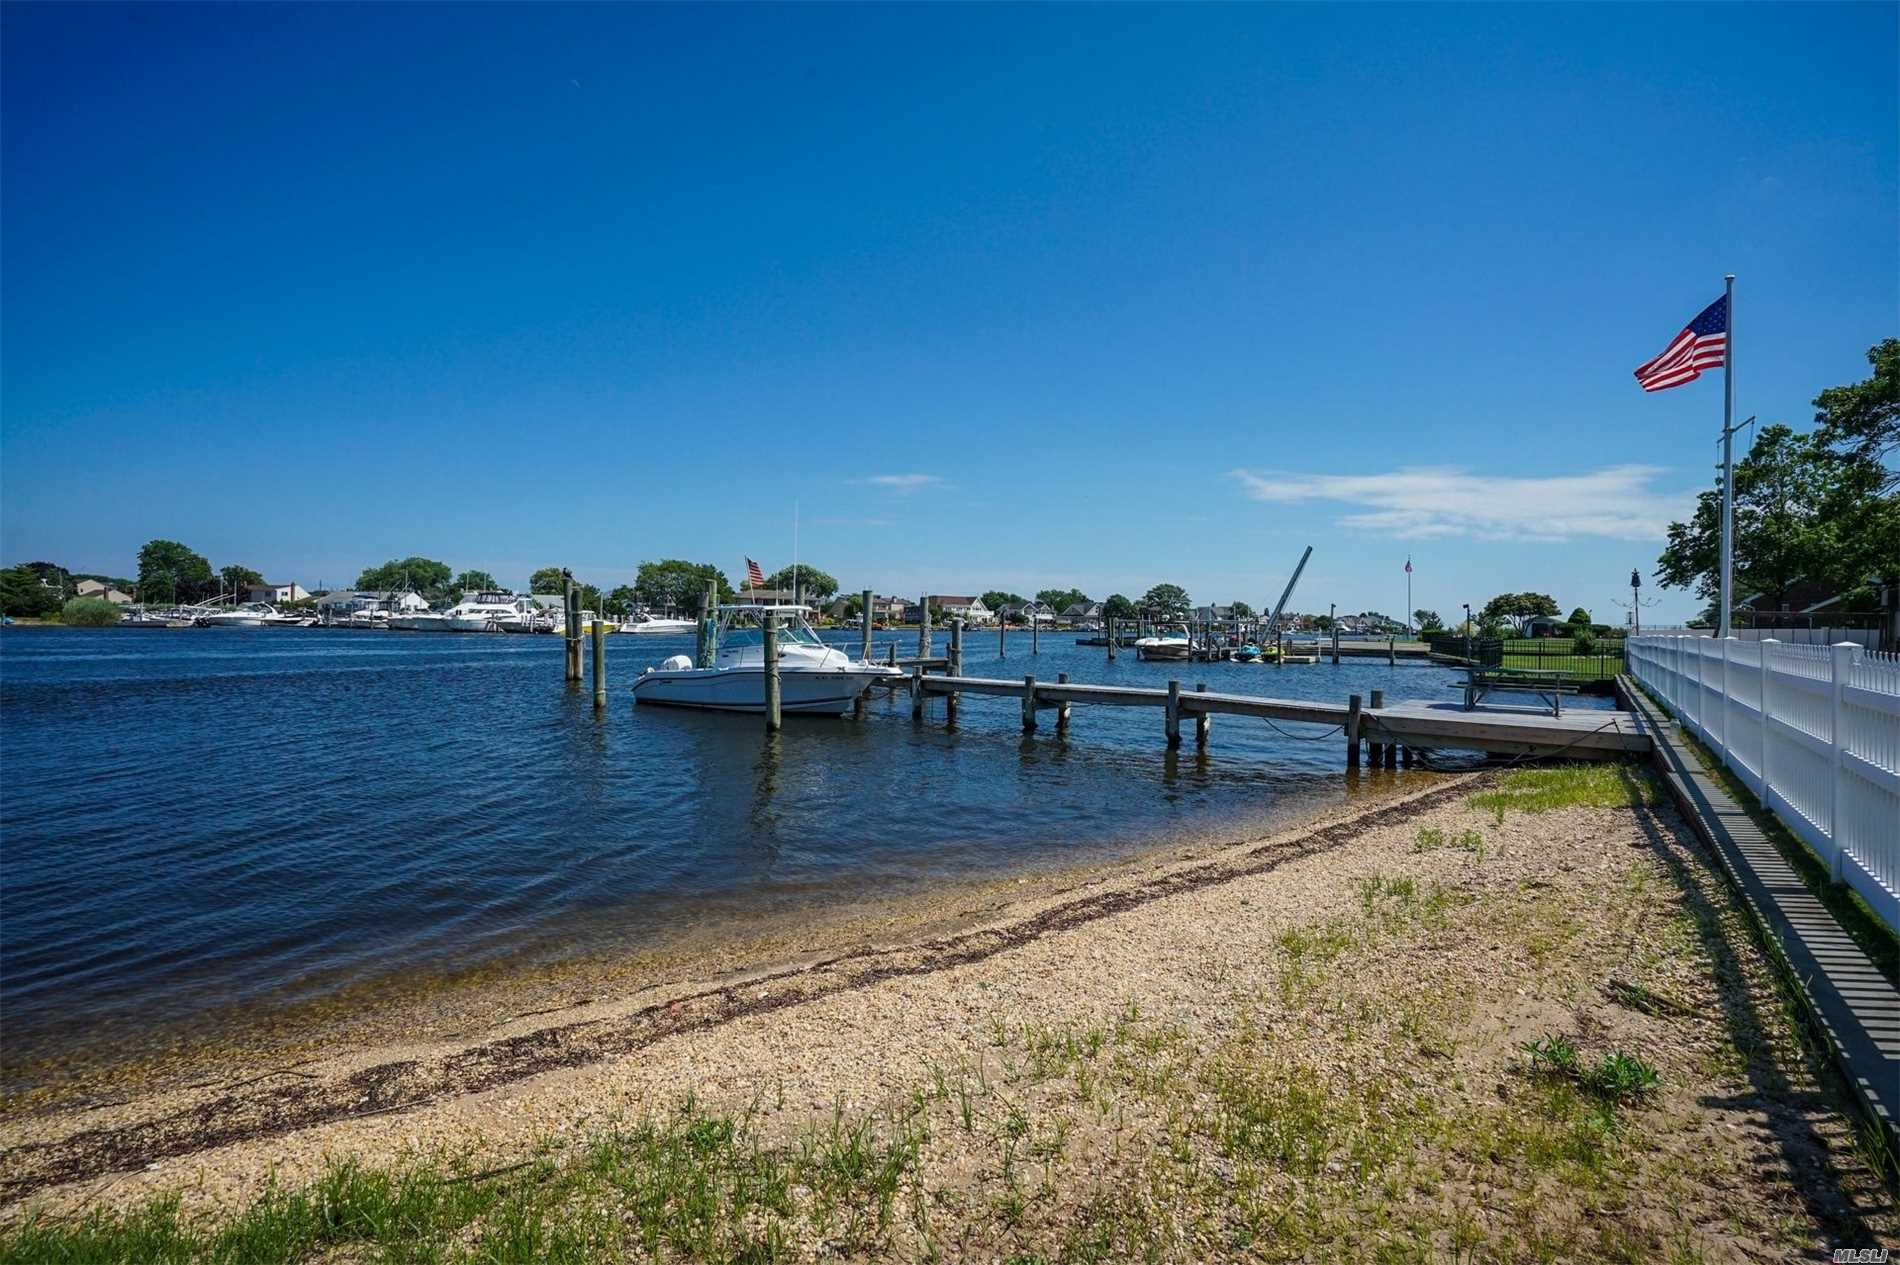 What An Opportunity! This Waterfront Home On Famous Peninsula Dr Has One Of The Best Views On The South Shore! Room For 3 Boats! Private Beach! In Ground Pool! Over 4, 000 Sq Feet Of Wow!!